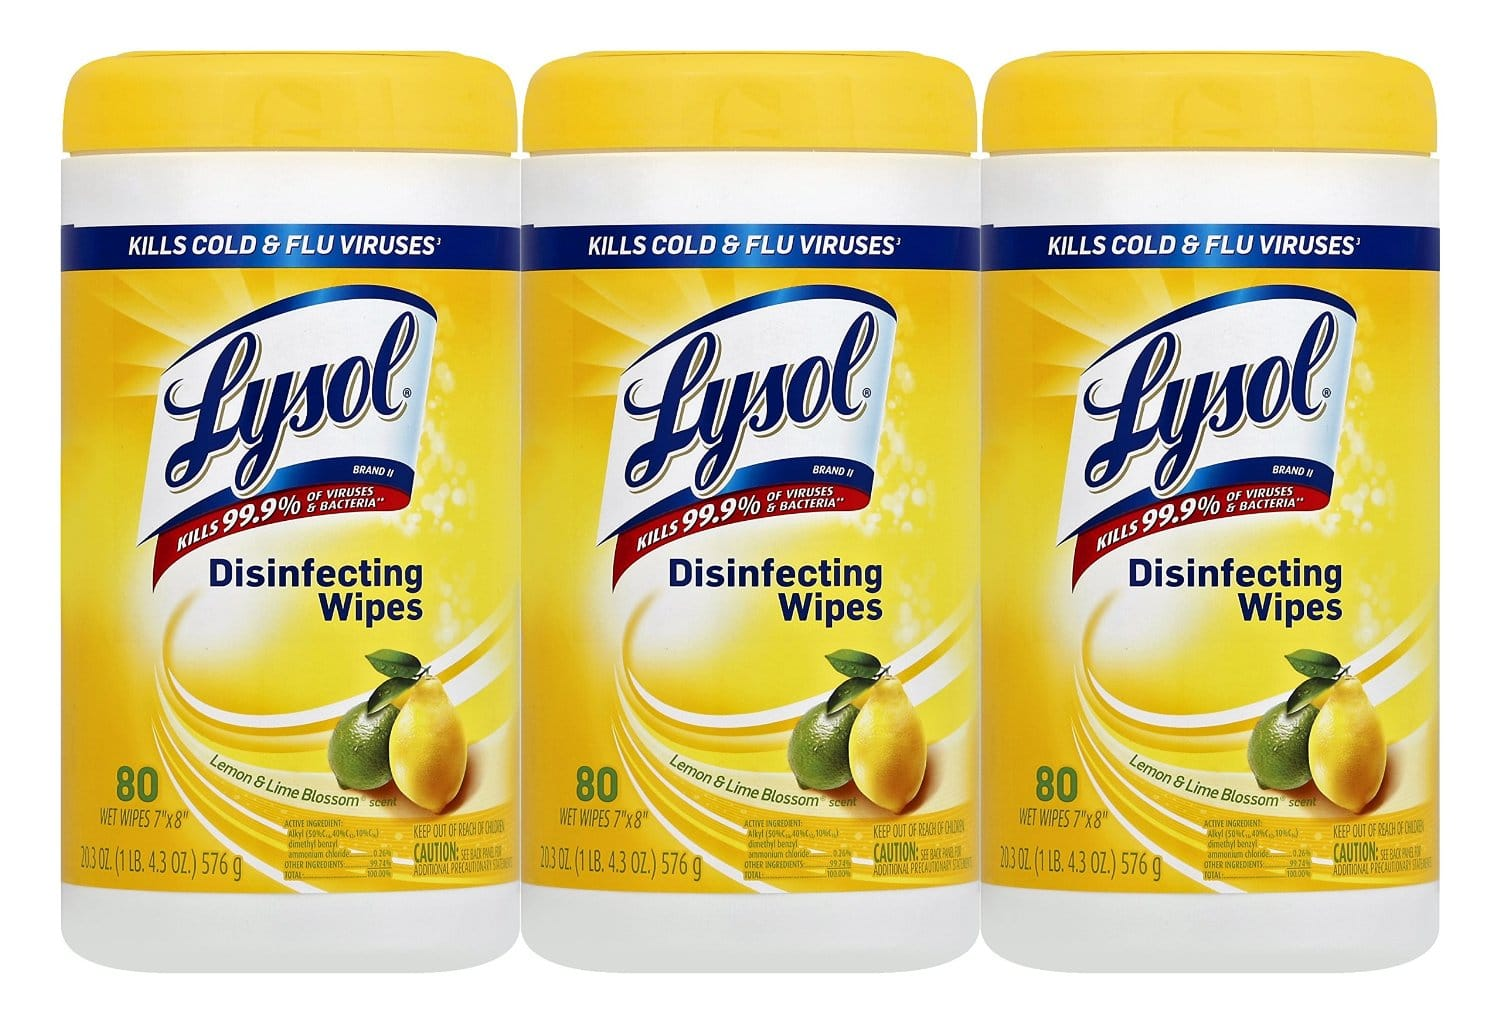 3-Pack 80-Count Lysol Disinfecting Wipes (Lemon & Lime) $6.59 + Free Shipping